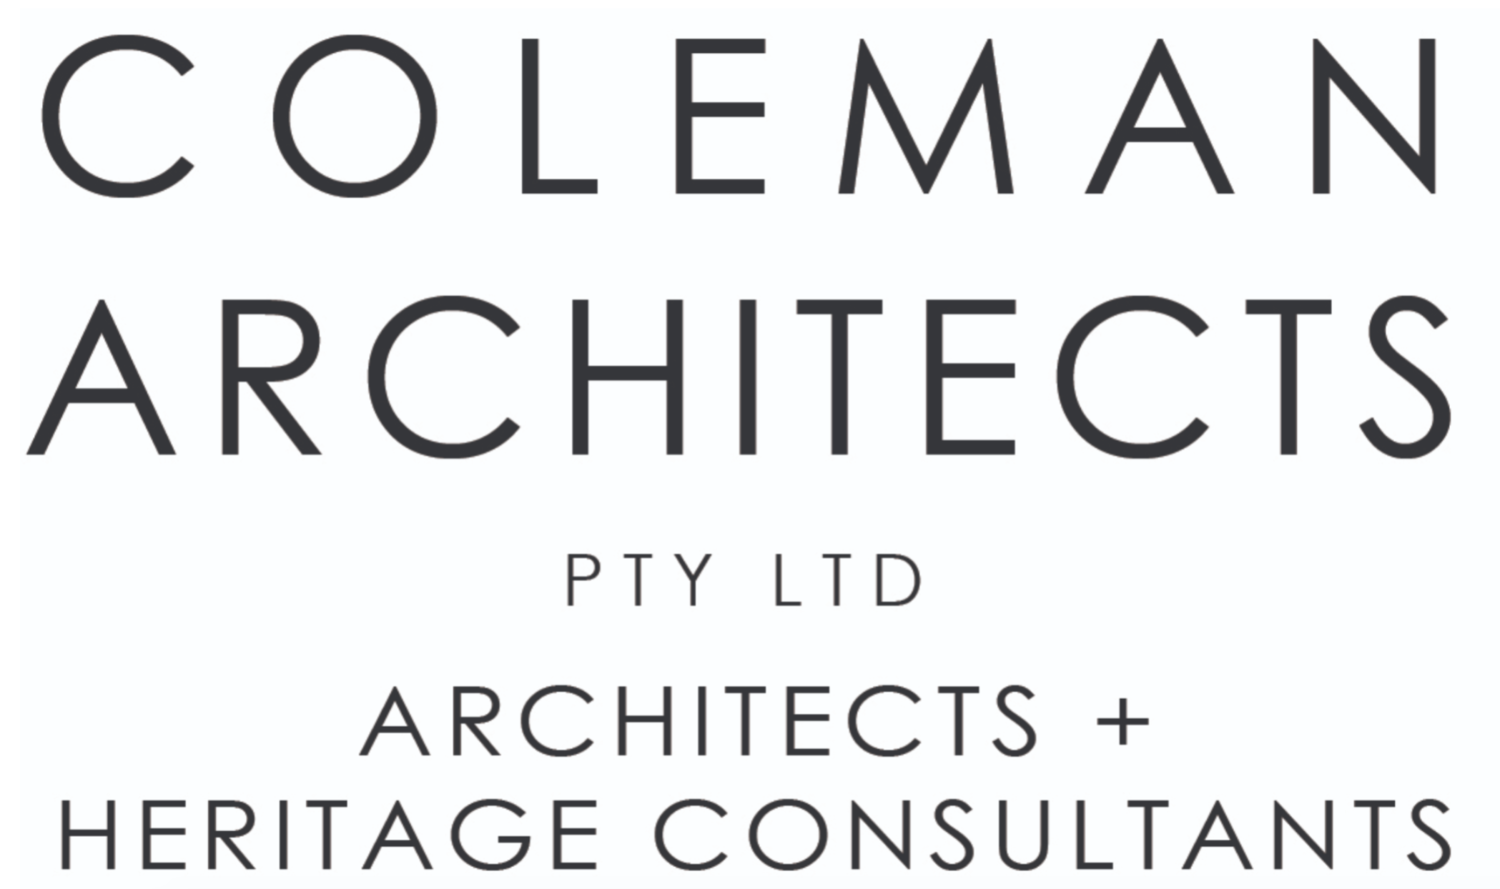 COLEMAN ARCHITECTURE + HERITAGE